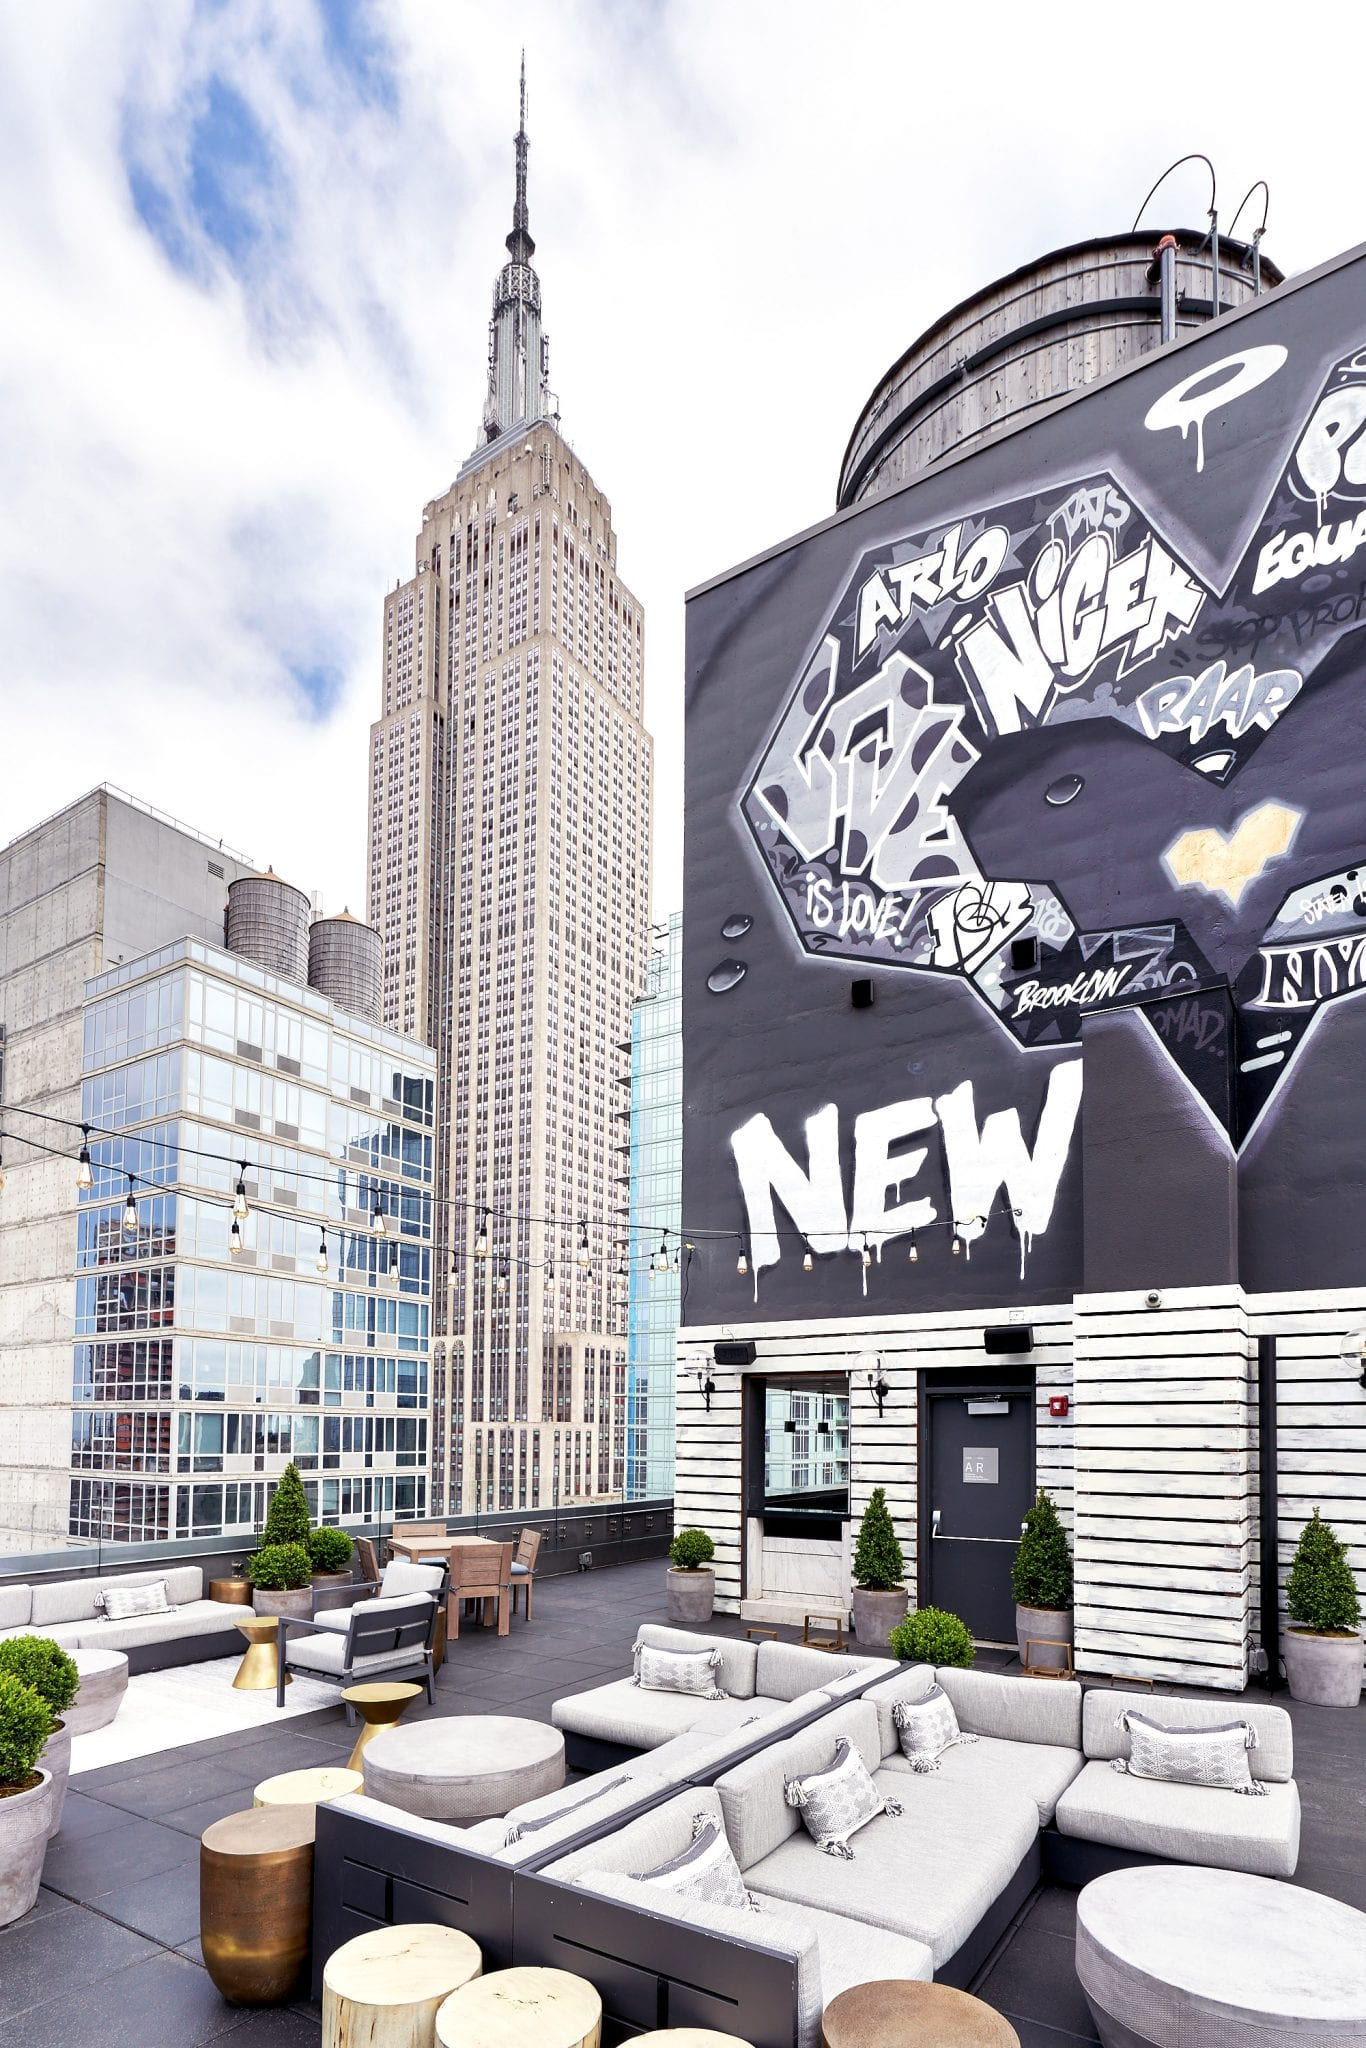 A.R.T. NoMad NYC rooftop with view of empire state building and mural